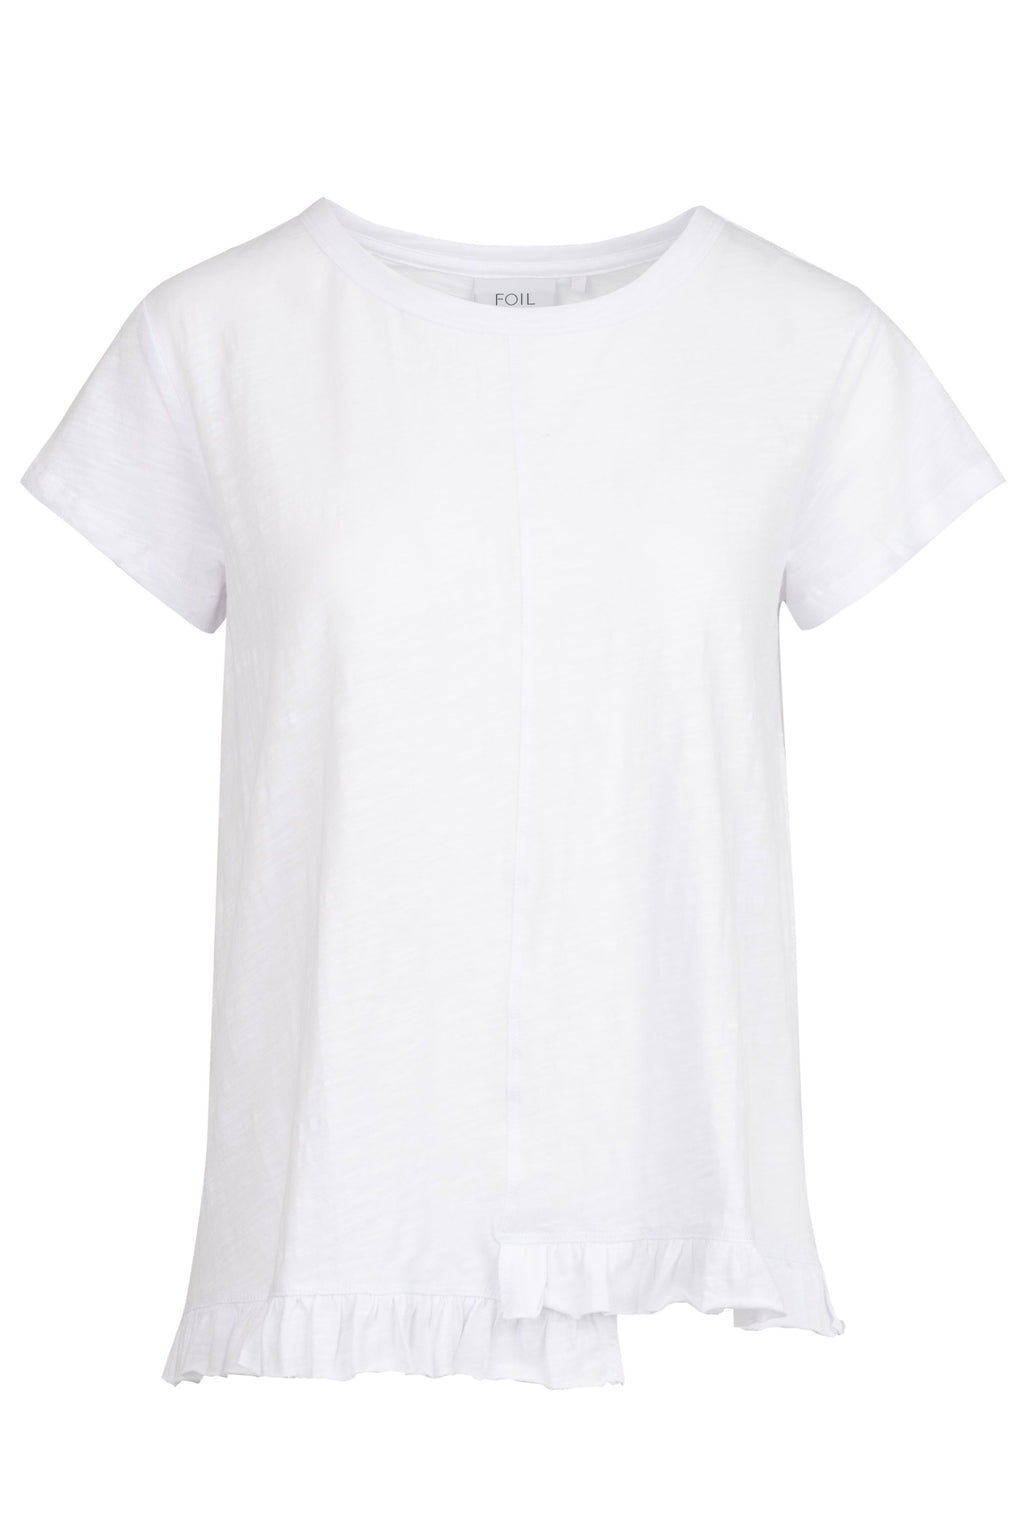 Cotton T- Shirt by 'Foil' in White